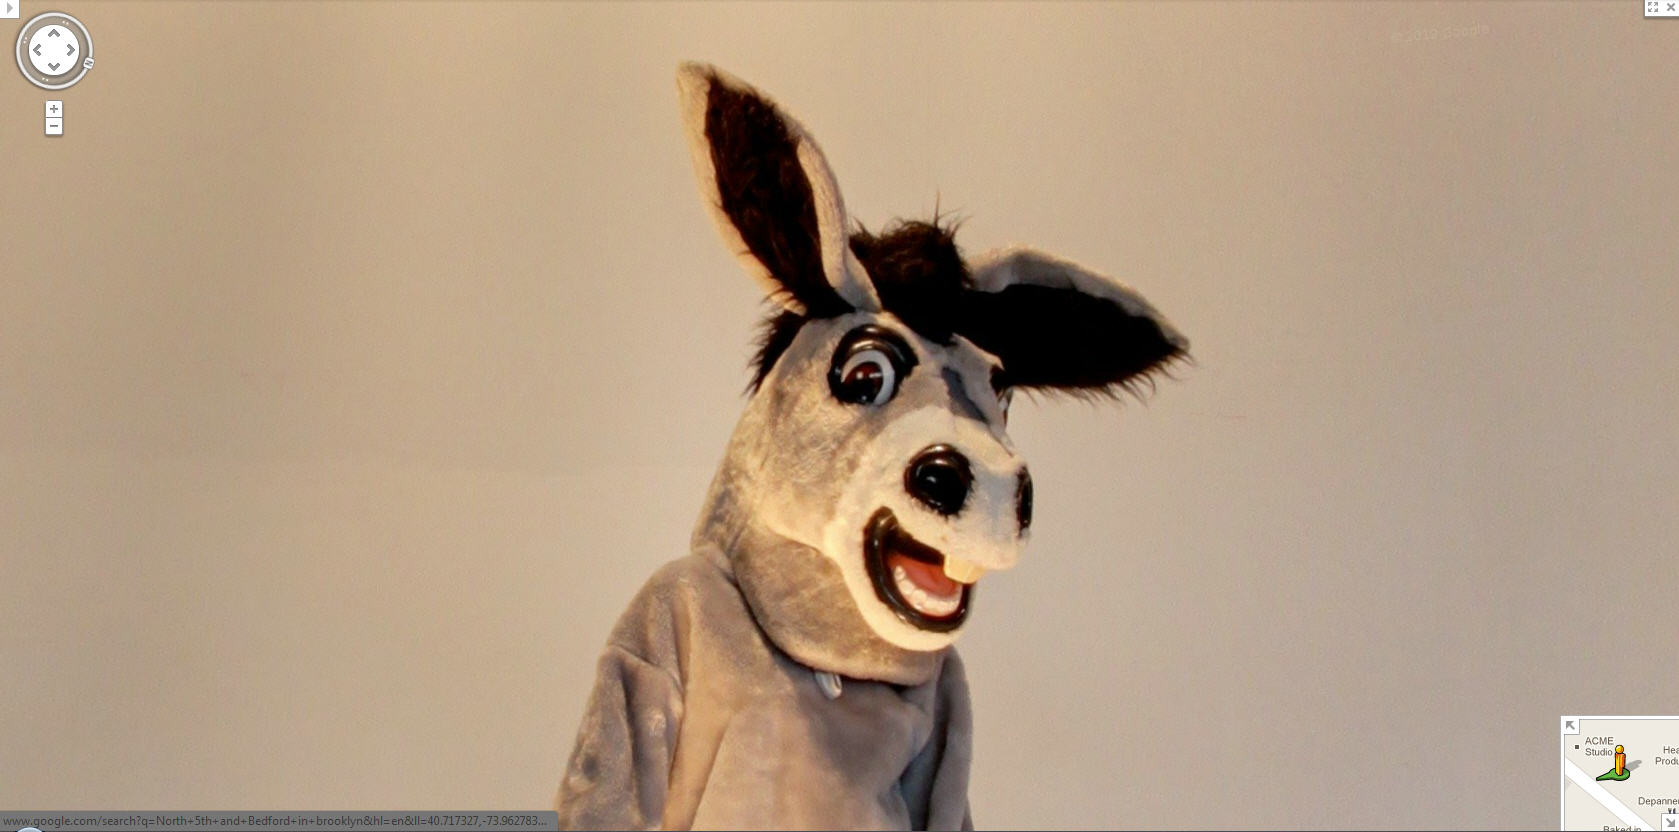 google-street-view-captures-a-donkey-posing-for-the-camera